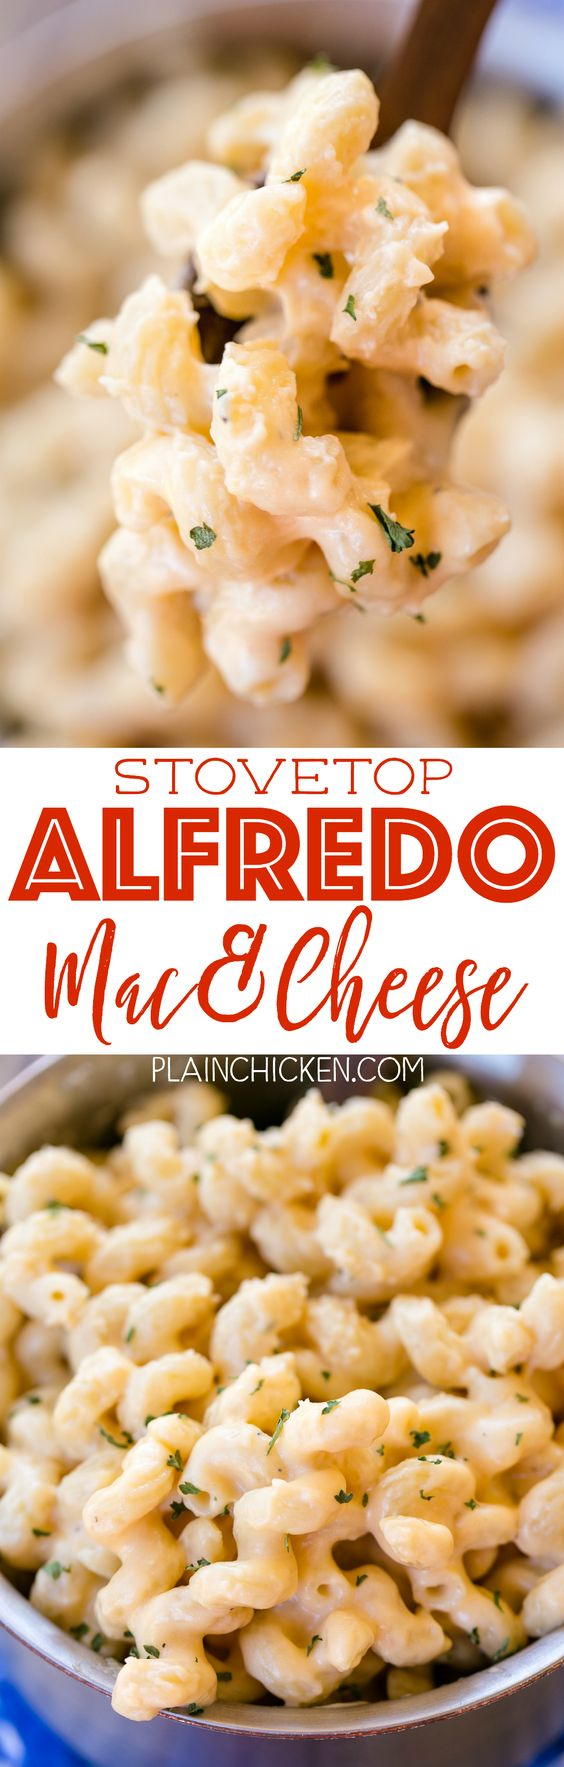 Stovetop Alfredo Mac & Cheese - ready in 10 minutes! We make this all the time! SO easy and SOOOO delicious! Only 5 ingredients! Pasta tossed in jarred Alfredo sauce, cheddar cheese, parmesan cheese and garlic. Perfect weeknight side dish. Great with steak, chicken and pork.